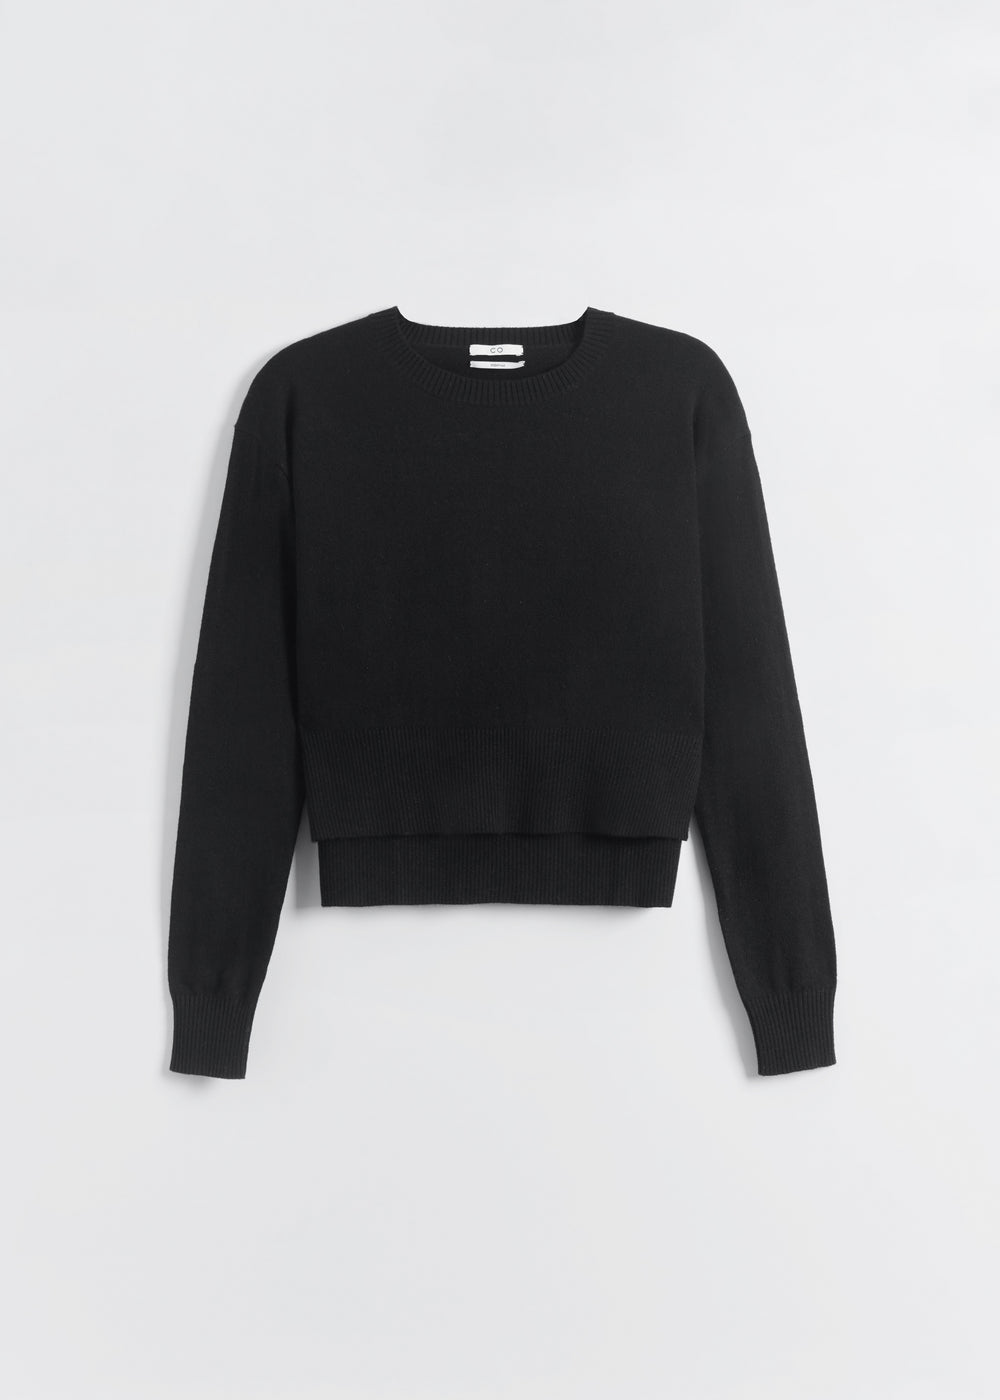 Cropped Crew Neck in Wool Cashmere - Ivory in Black by Co Collections